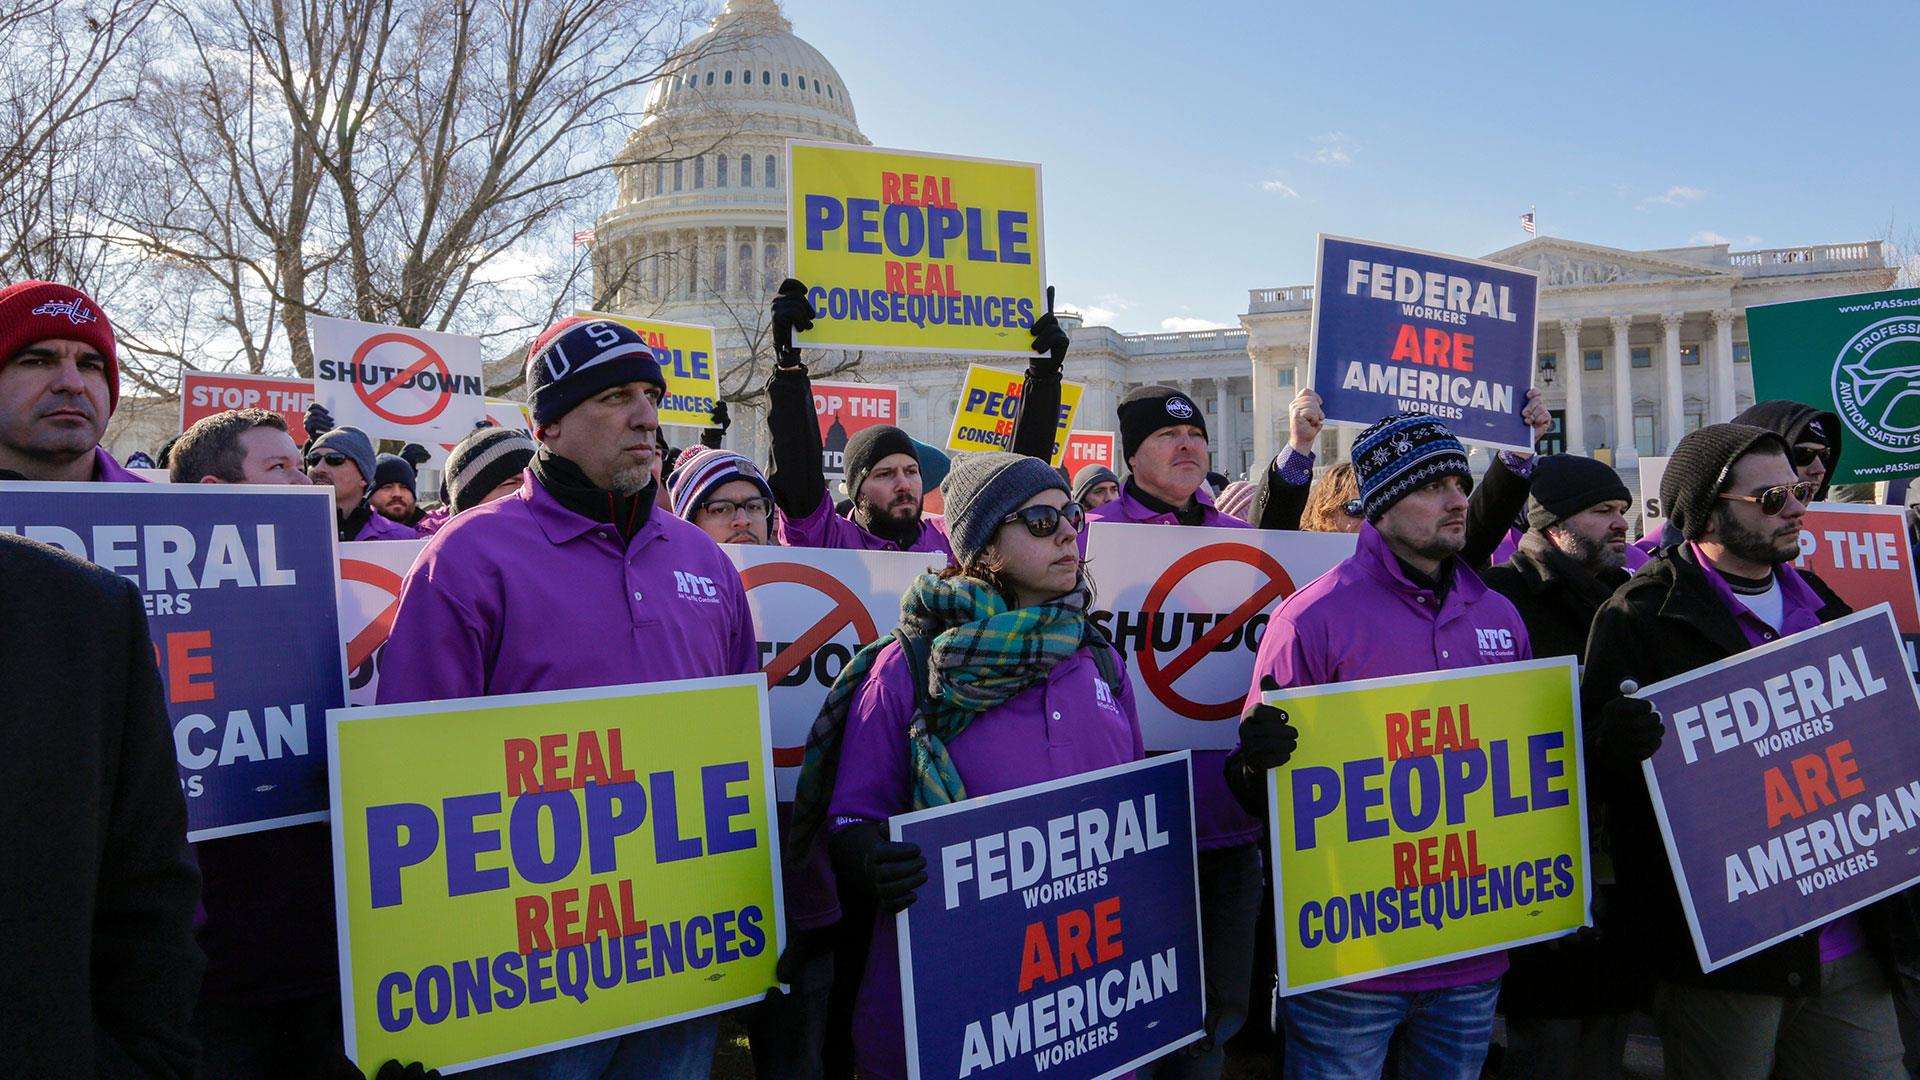 Angry furloughed federal workers protest shutdown at the White House, around the country